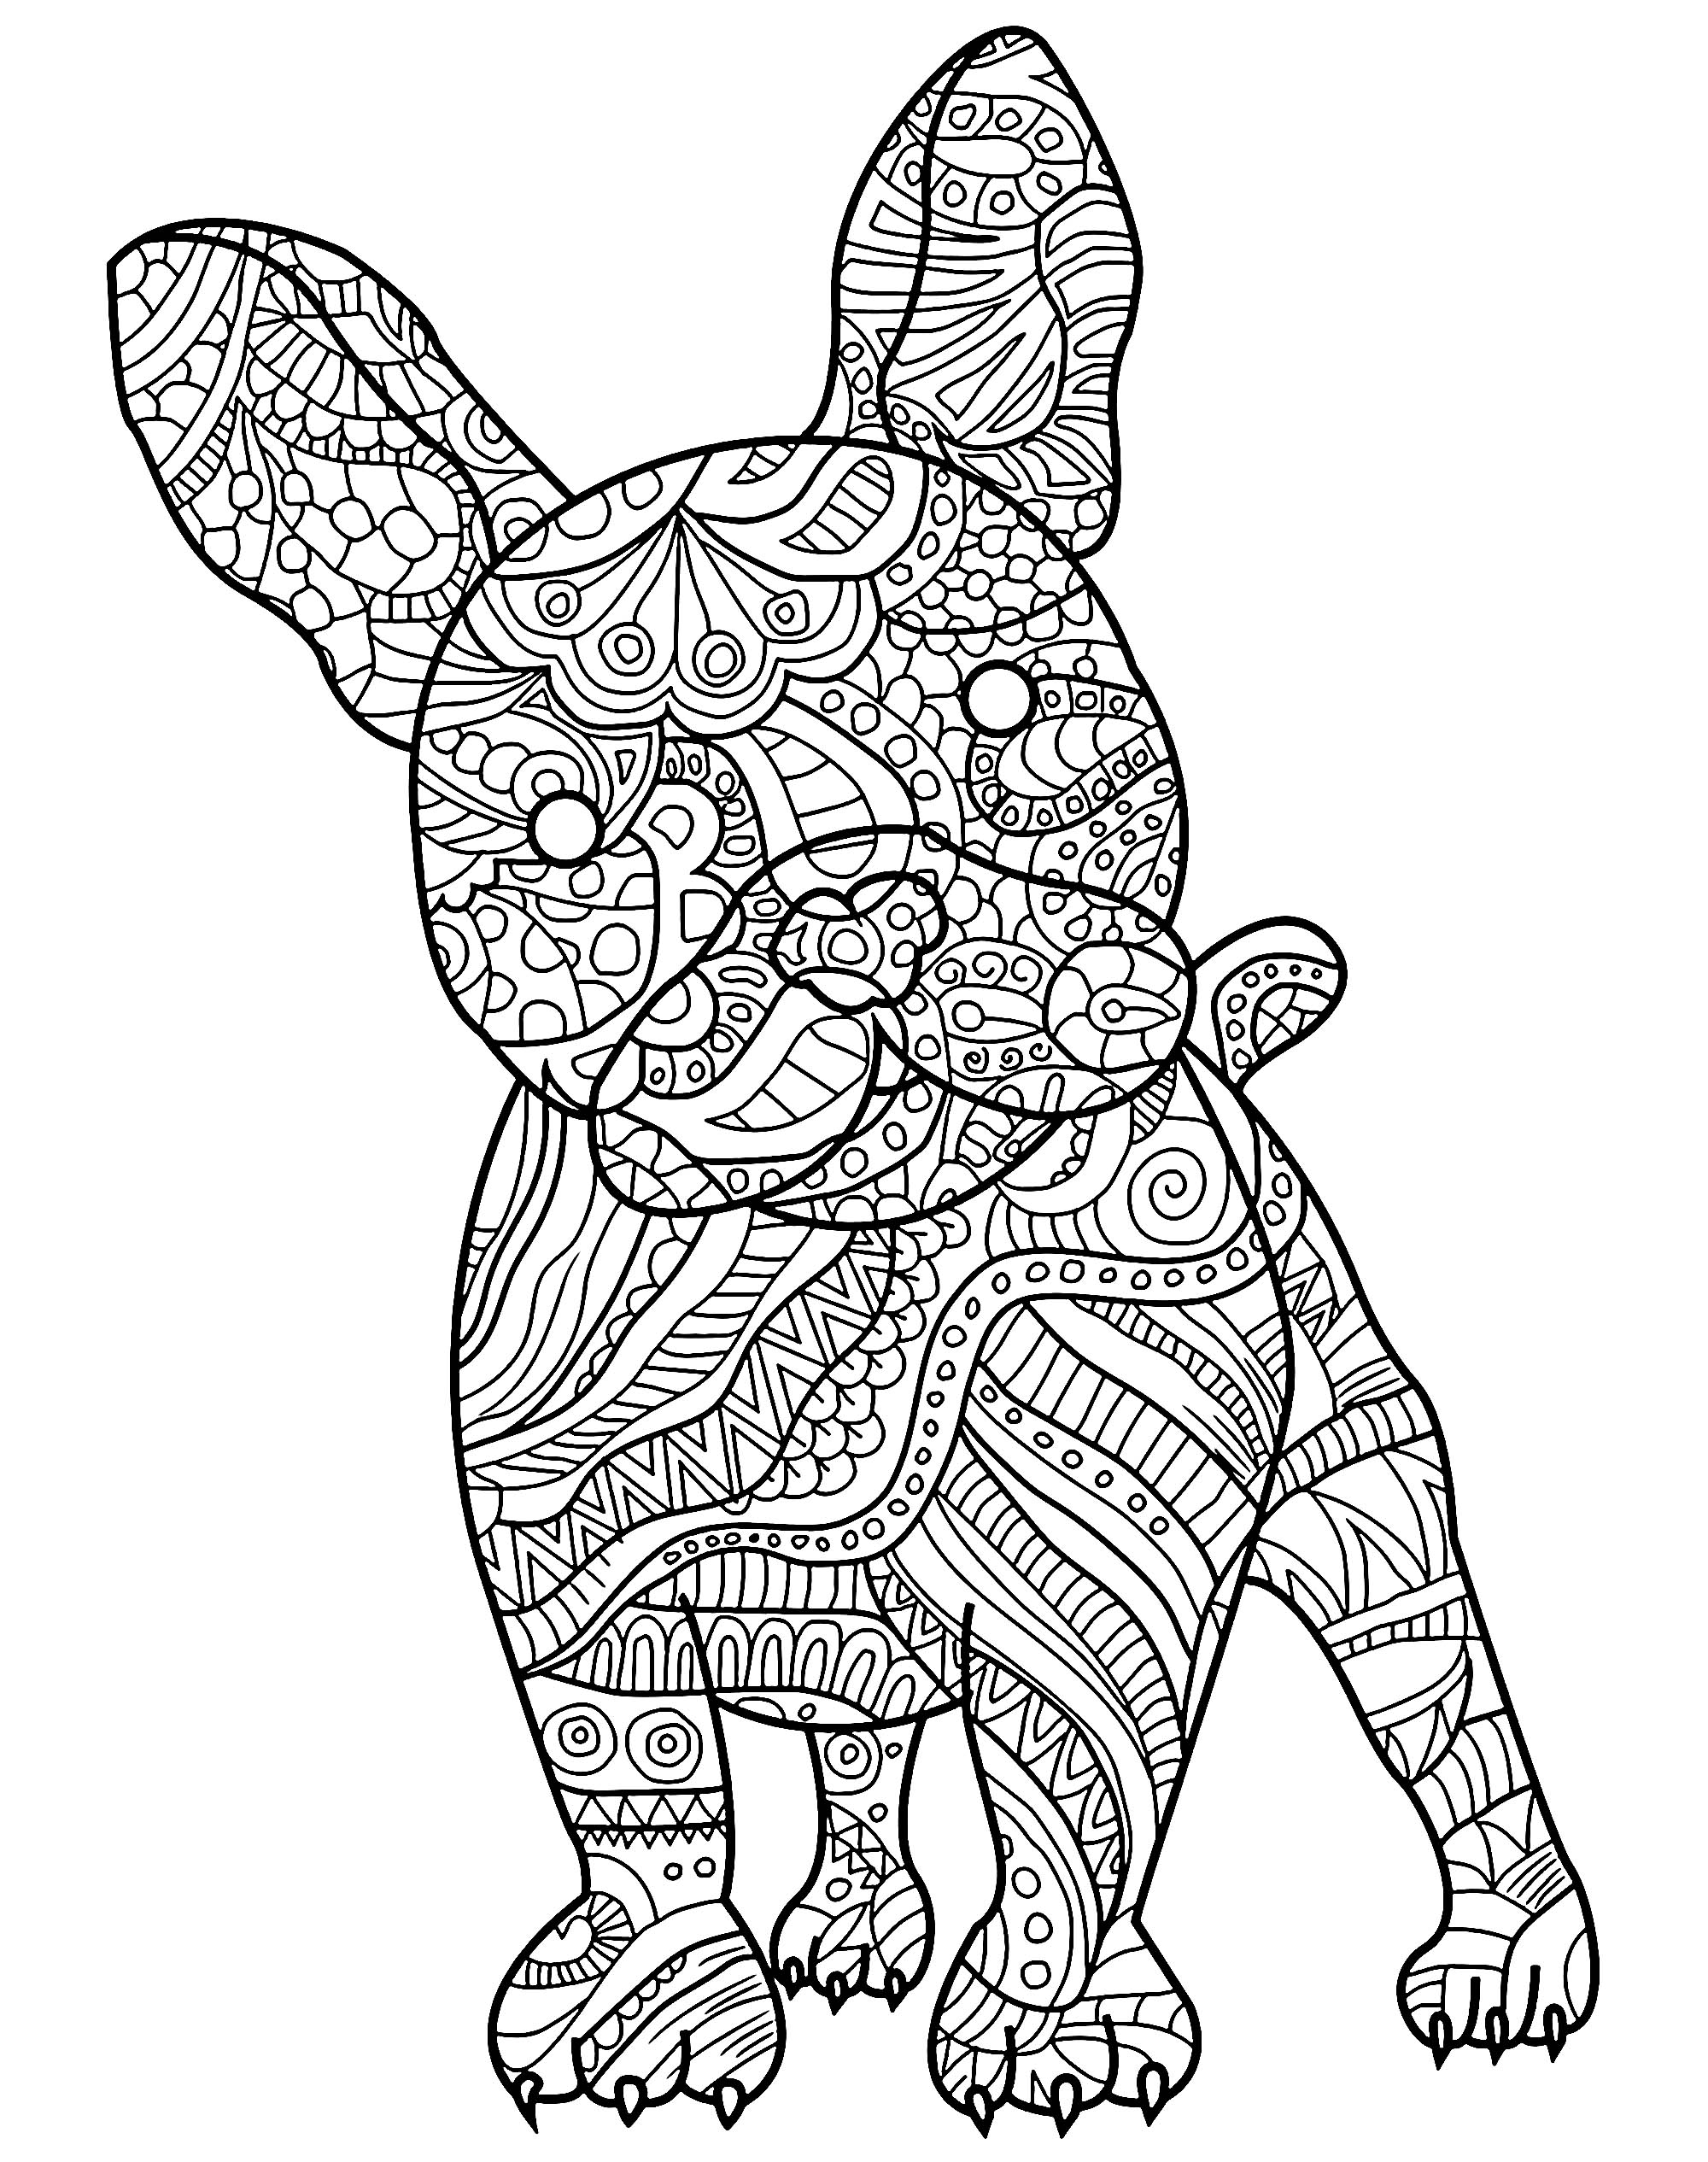 Dog To Download For Free Dogs Kids Coloring Pages